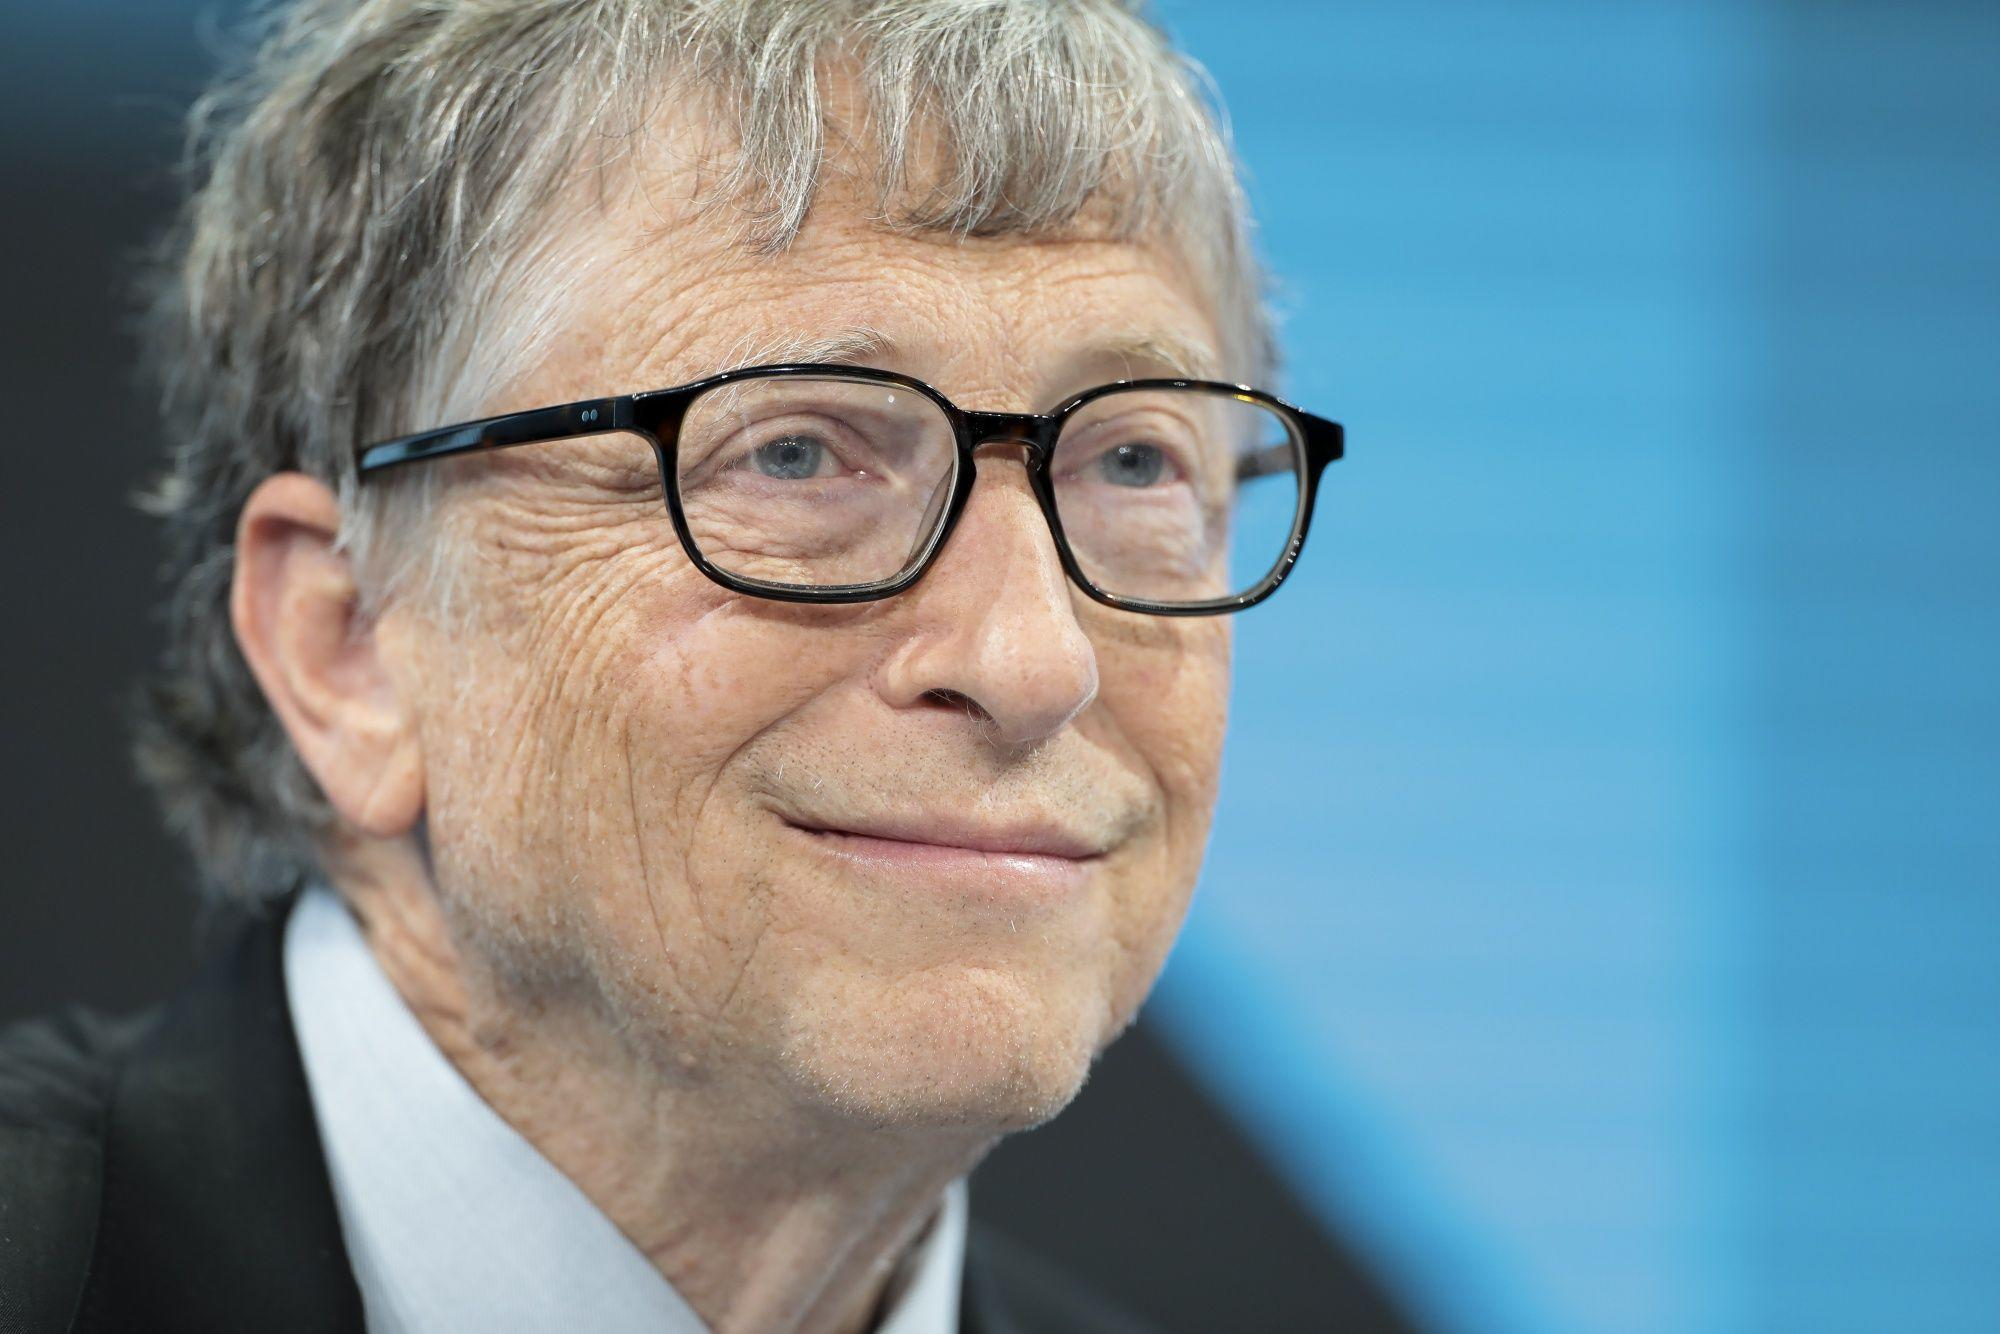 Bill Gates Tops Jeff Bezos as World's Richest Person